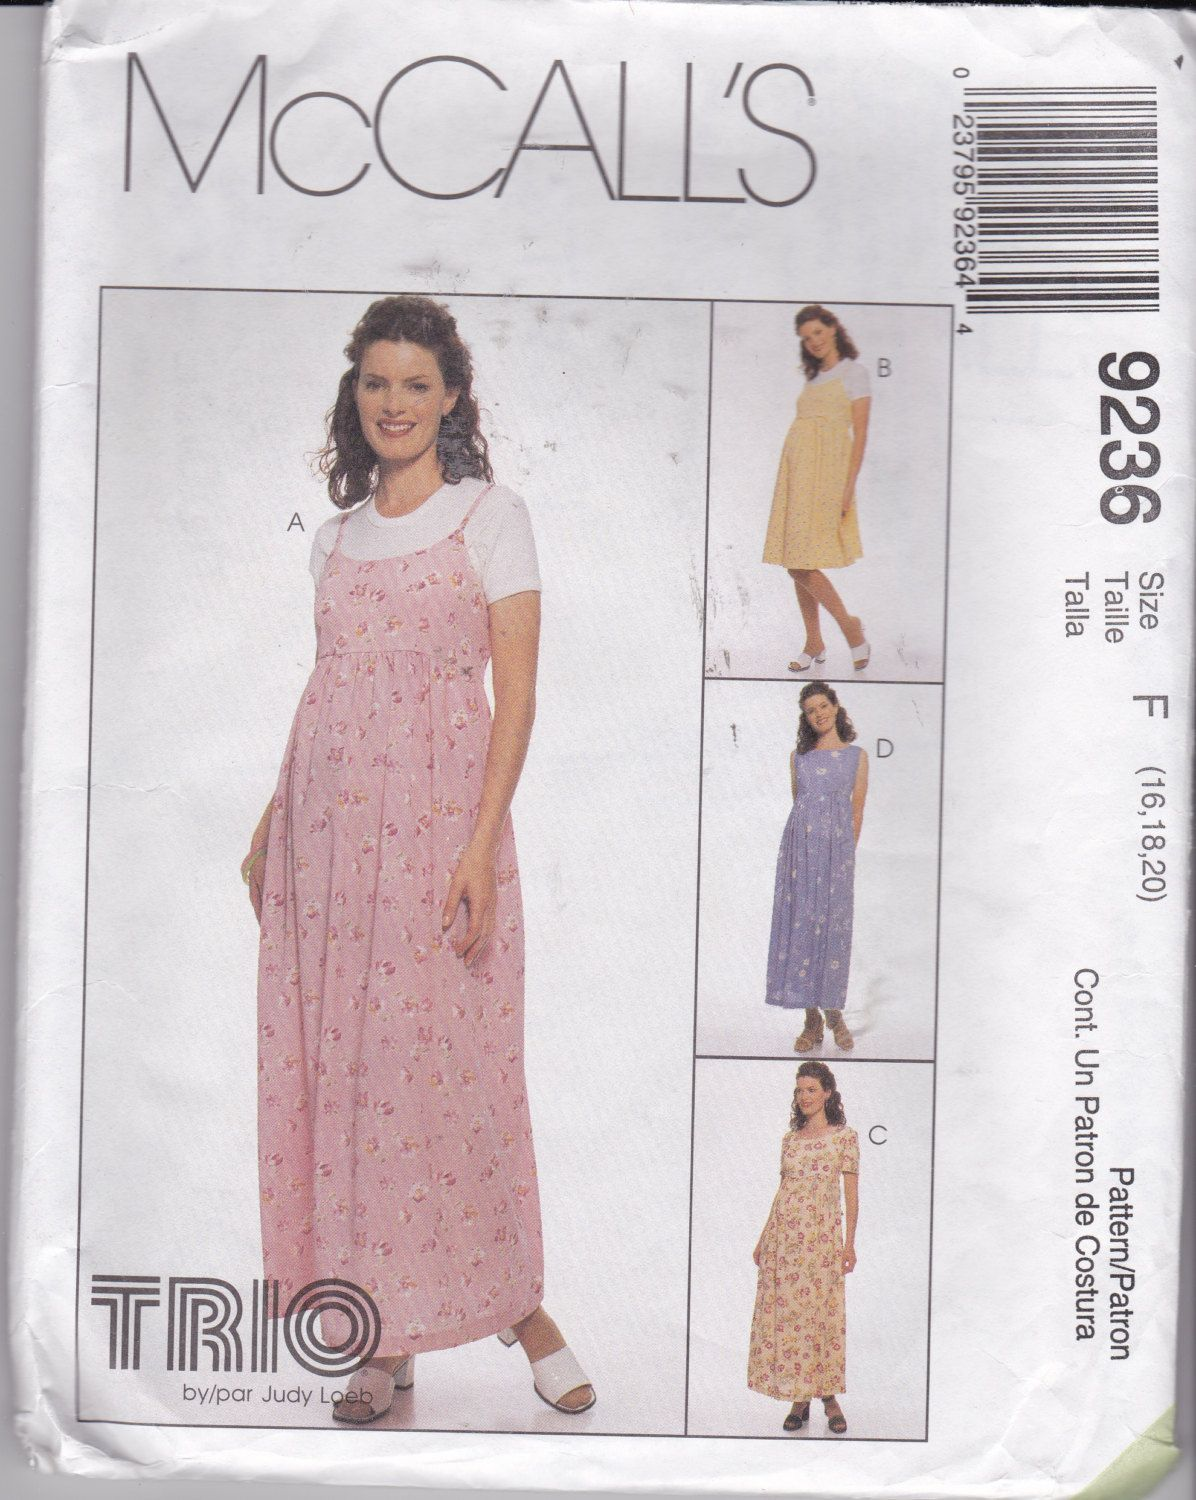 McCalls 9236 Size 16, a TRIO by Judy Loeb pattern for a Maternity ...